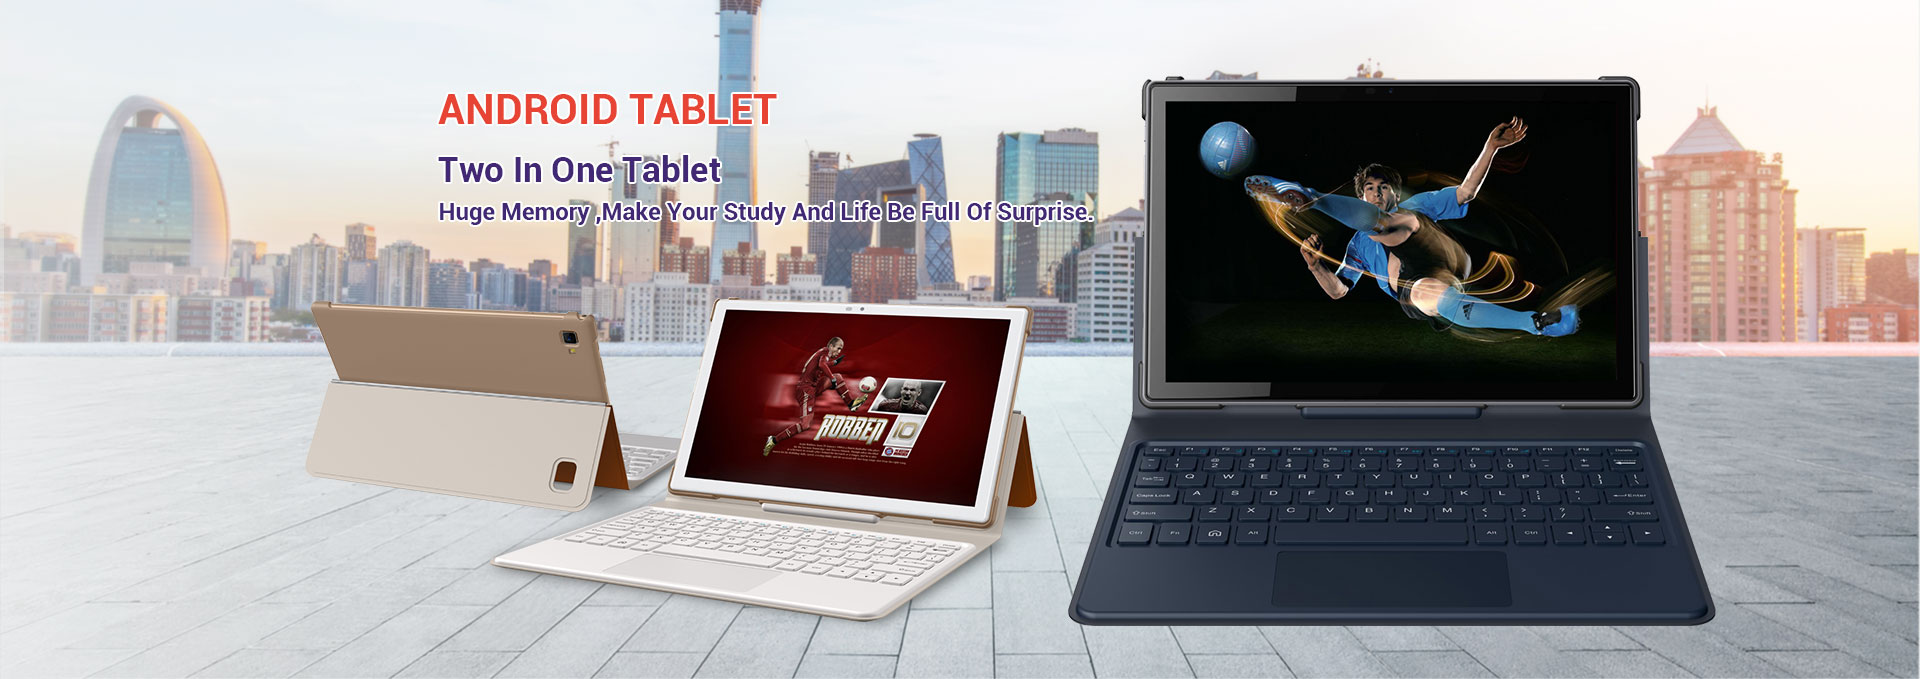 Android Tablet Two in One Tablet